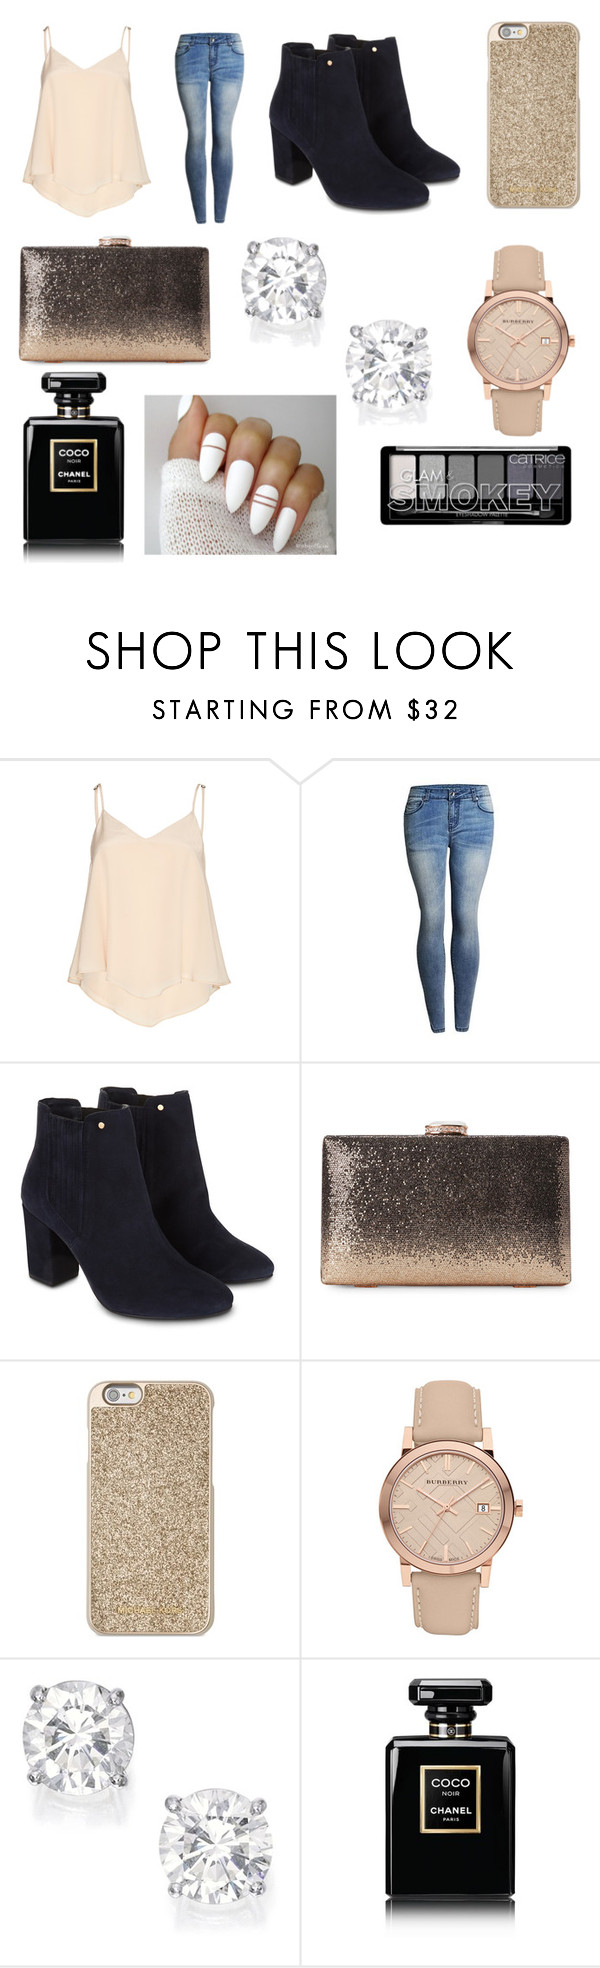 """""""Date Night 3 x"""" by immig2003 on Polyvore featuring Alice + Olivia, Monsoon, Michael Kors, Burberry and Chanel"""